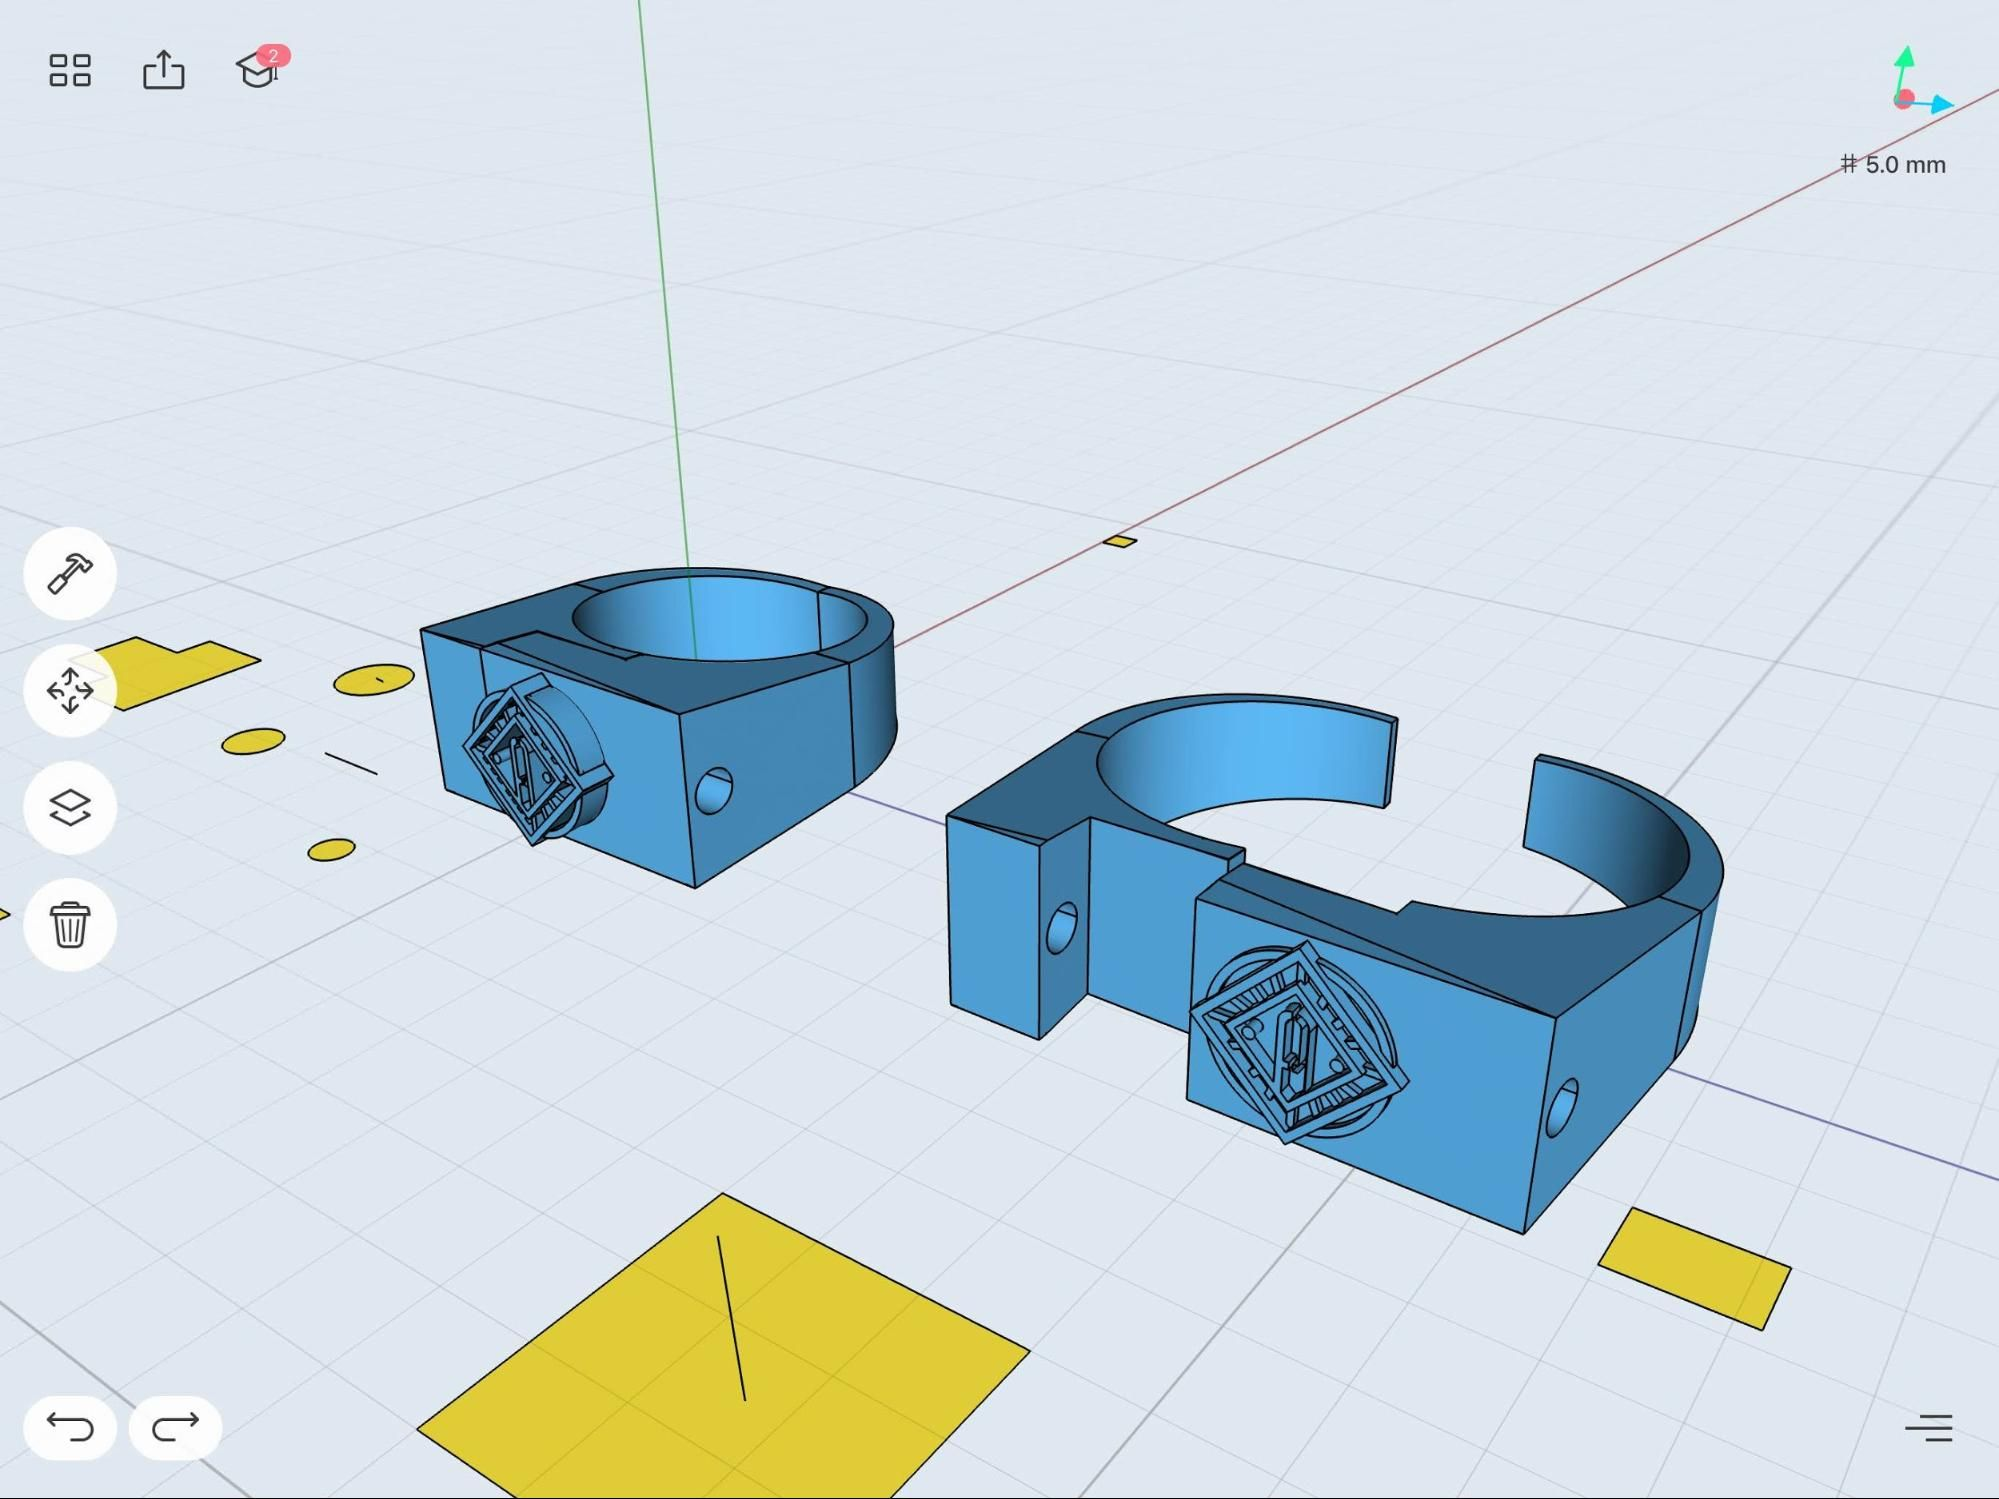 3D model of a ring prototype in Shapr3D